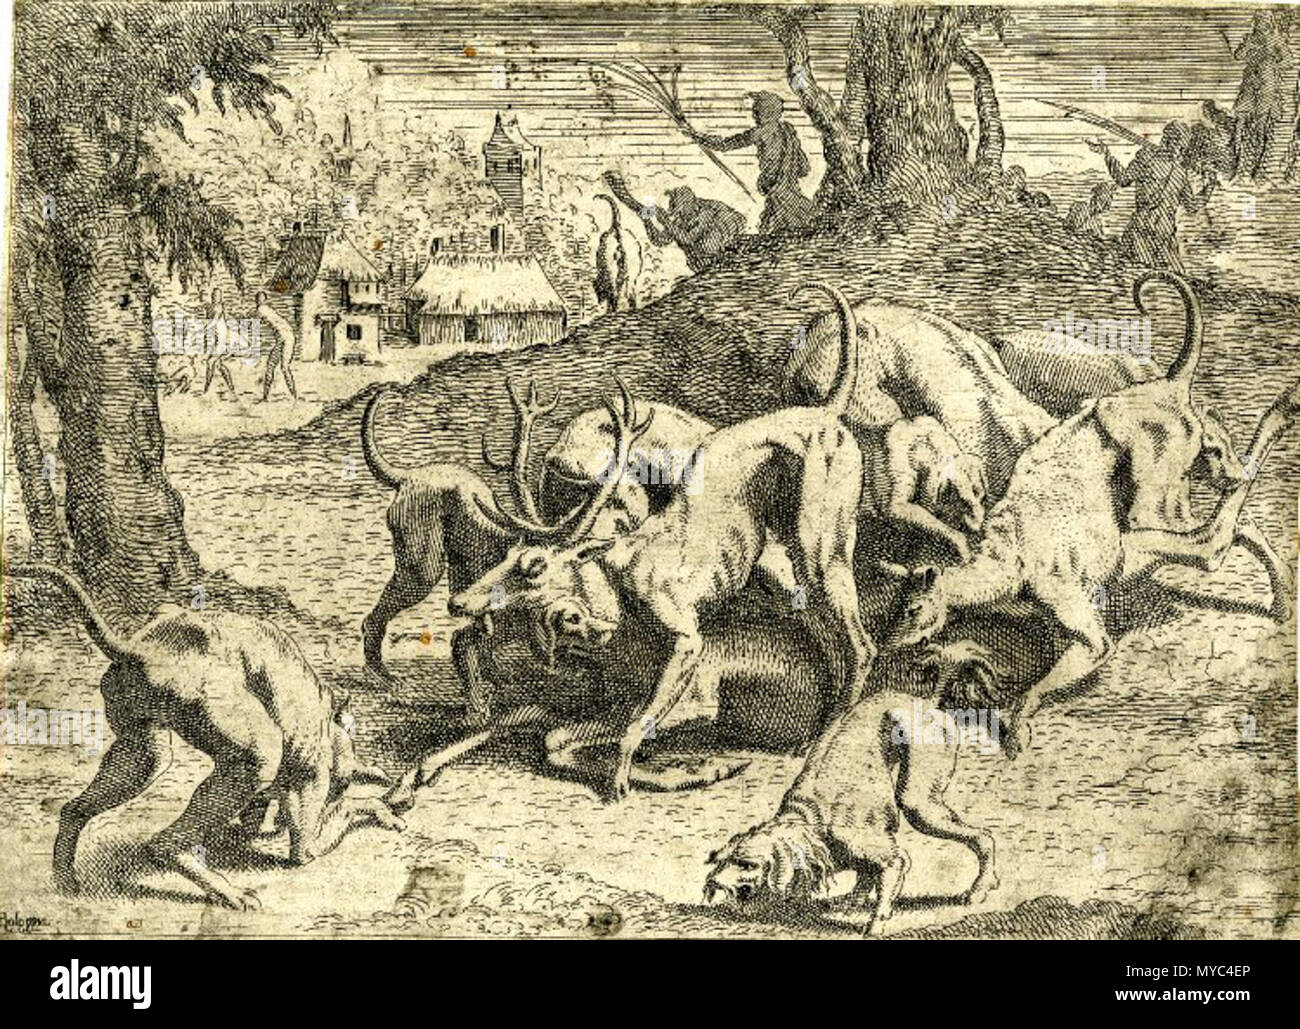 . English: British Museum Pack of hunting dogs attacking a stag, perhaps Actaeon after his metamorphosis; in the background, people in classical costume and houses. c.1545 Etching, Print made by: Léon Davent After: Francesco Primaticcio , 1545 Zerner 1969 LD.38 Bartsch XVI.331.64 . 1540s. Léon Davent - French printmaker in the mid 16th century 133 Davent acteon bm - Stock Image